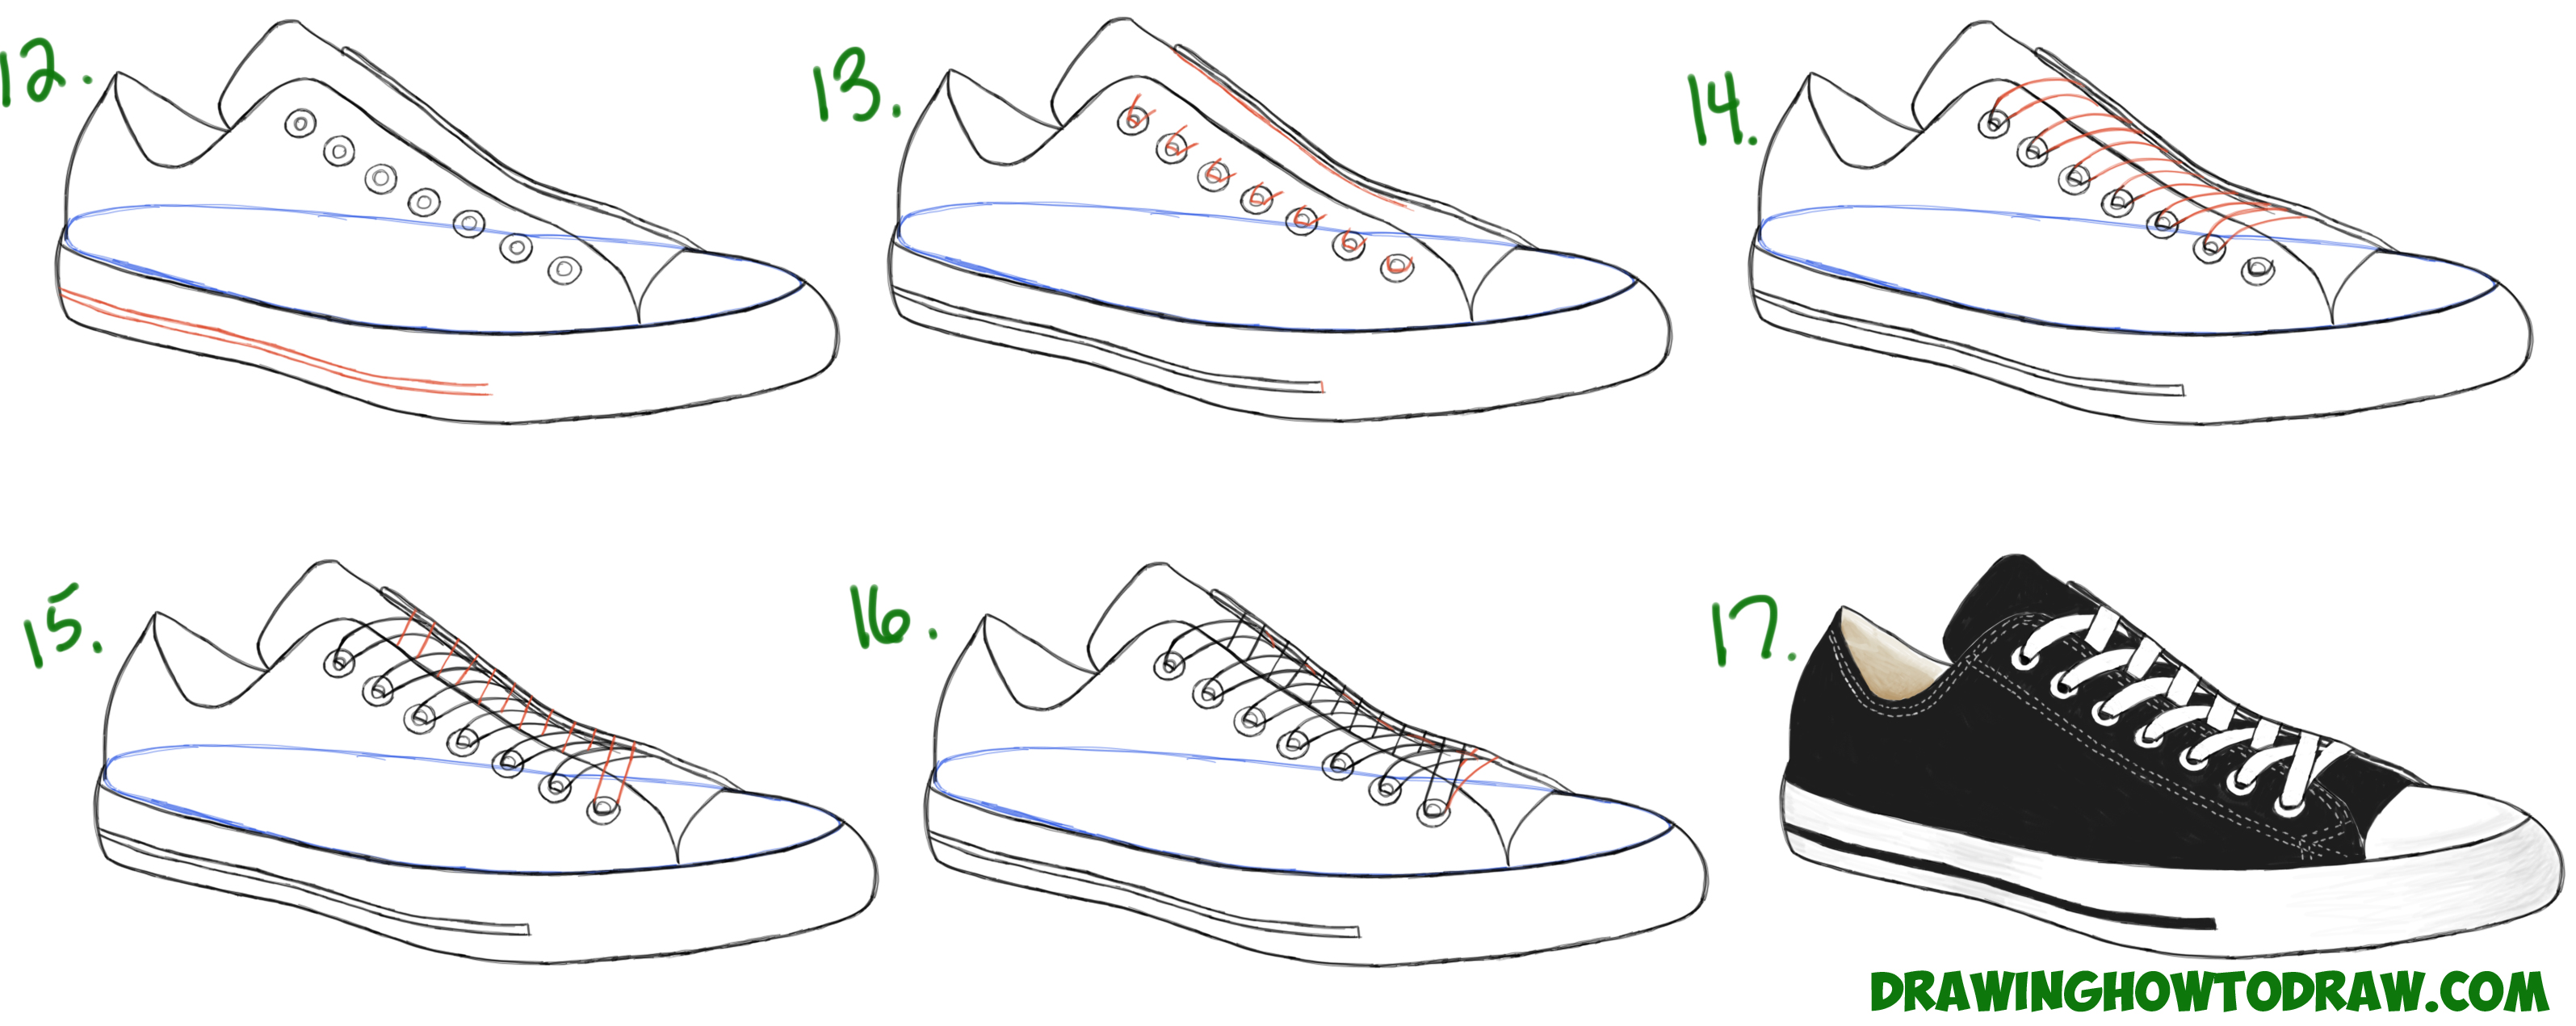 05a093e19a9b91 Learn How to Draw Sneakers   Shoes (Converse   Keds) with Simple Steps  Drawing